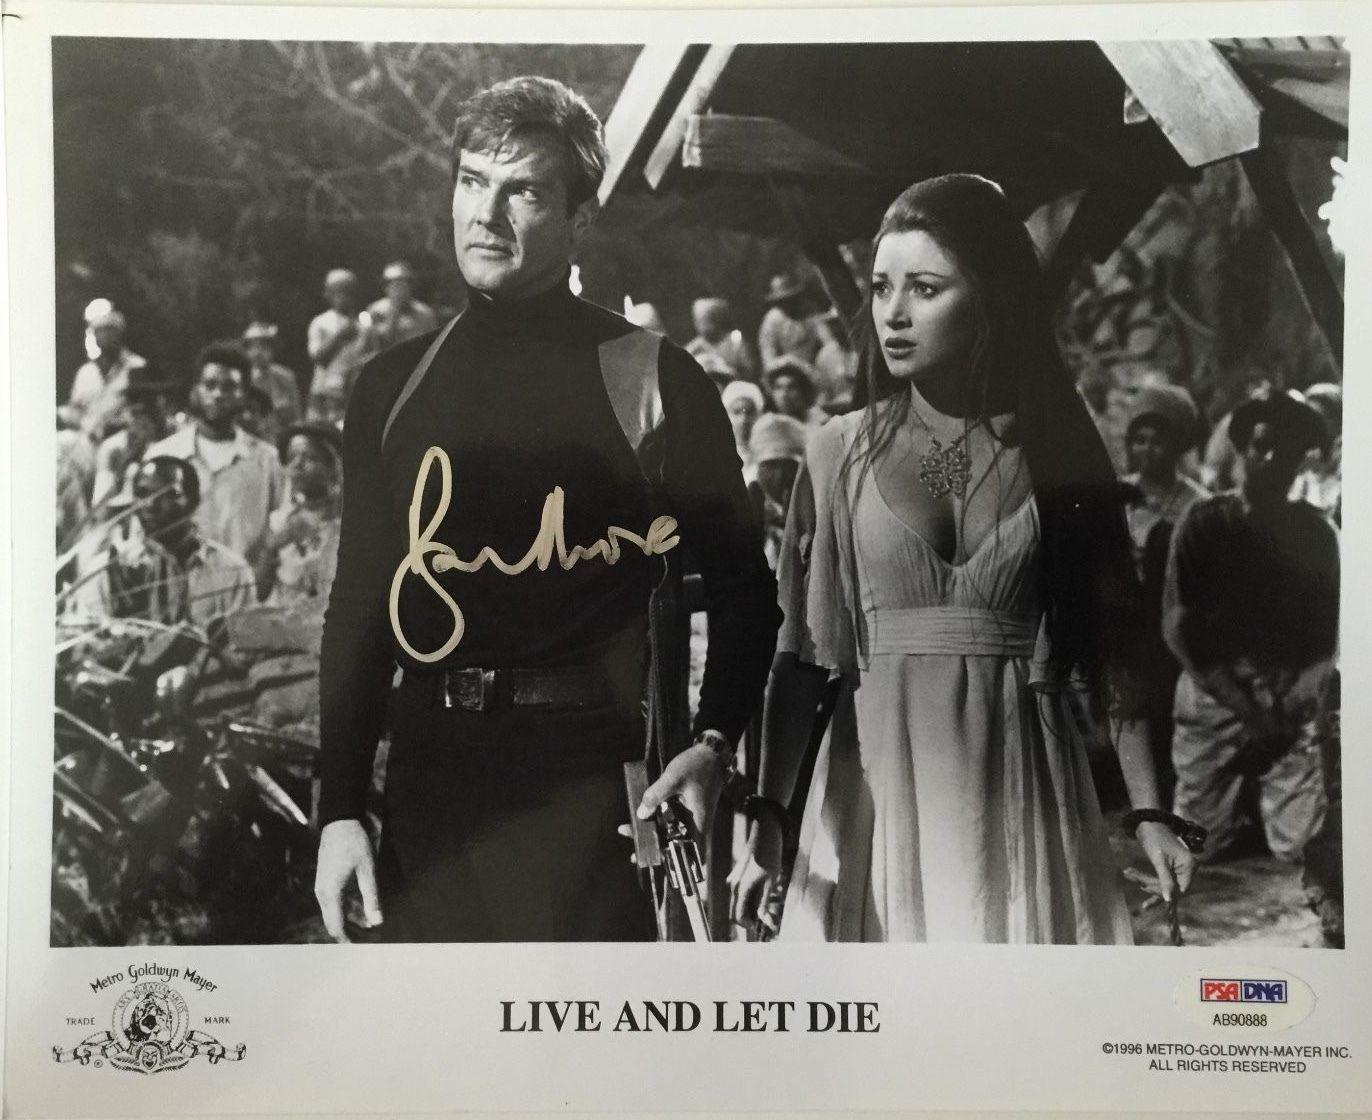 ROGER MOORE Signed JAMES BOND 007 Live and Let Die Movie 8x10 Photo PSA/DNA COA!